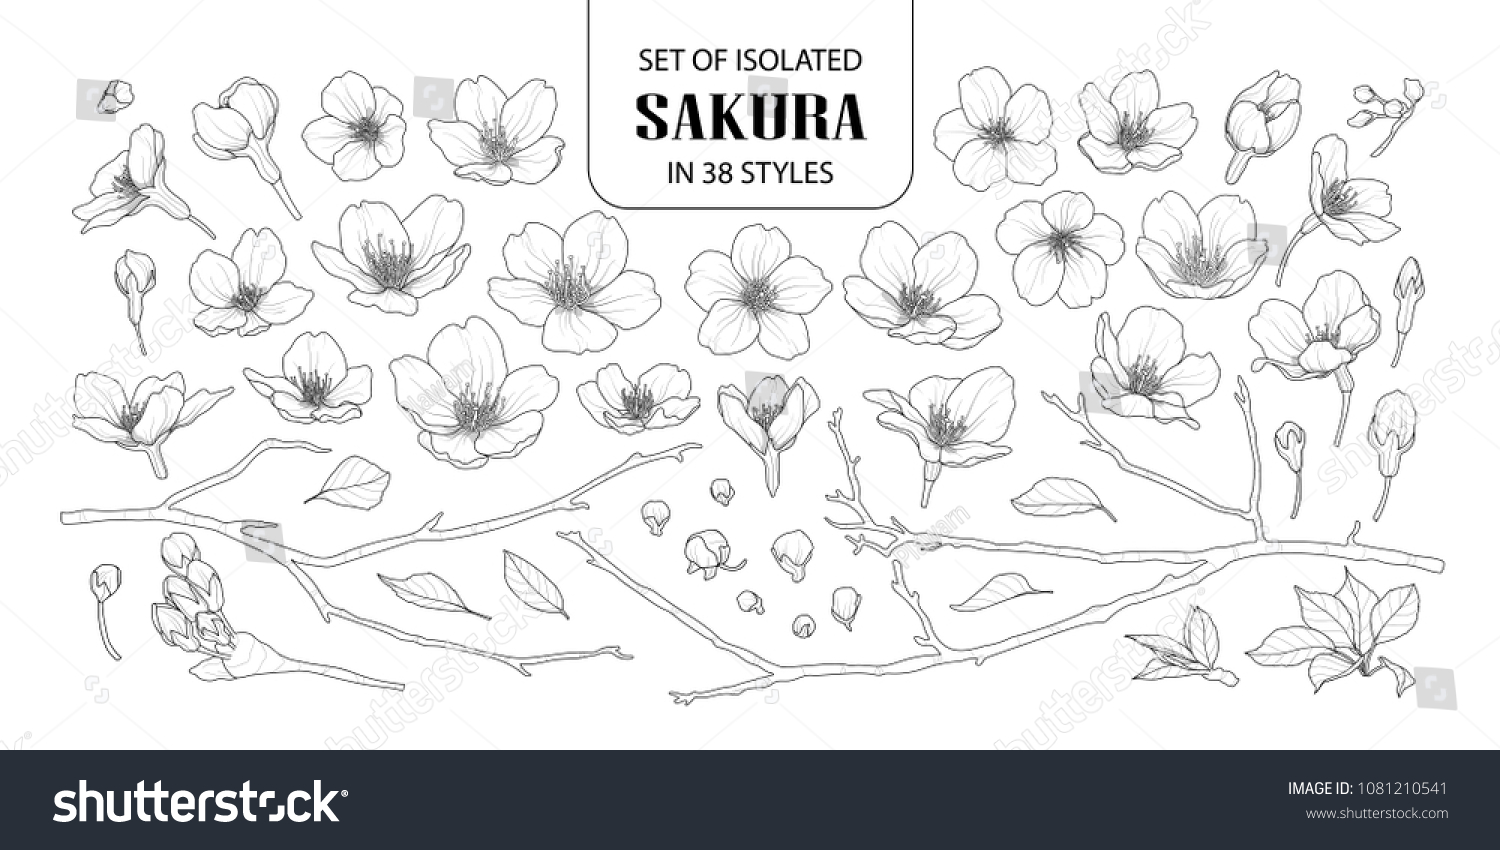 Set of isolated sakura in 38 styles. Cute hand drawn flower vector illustration in black outline and white plane on white background.